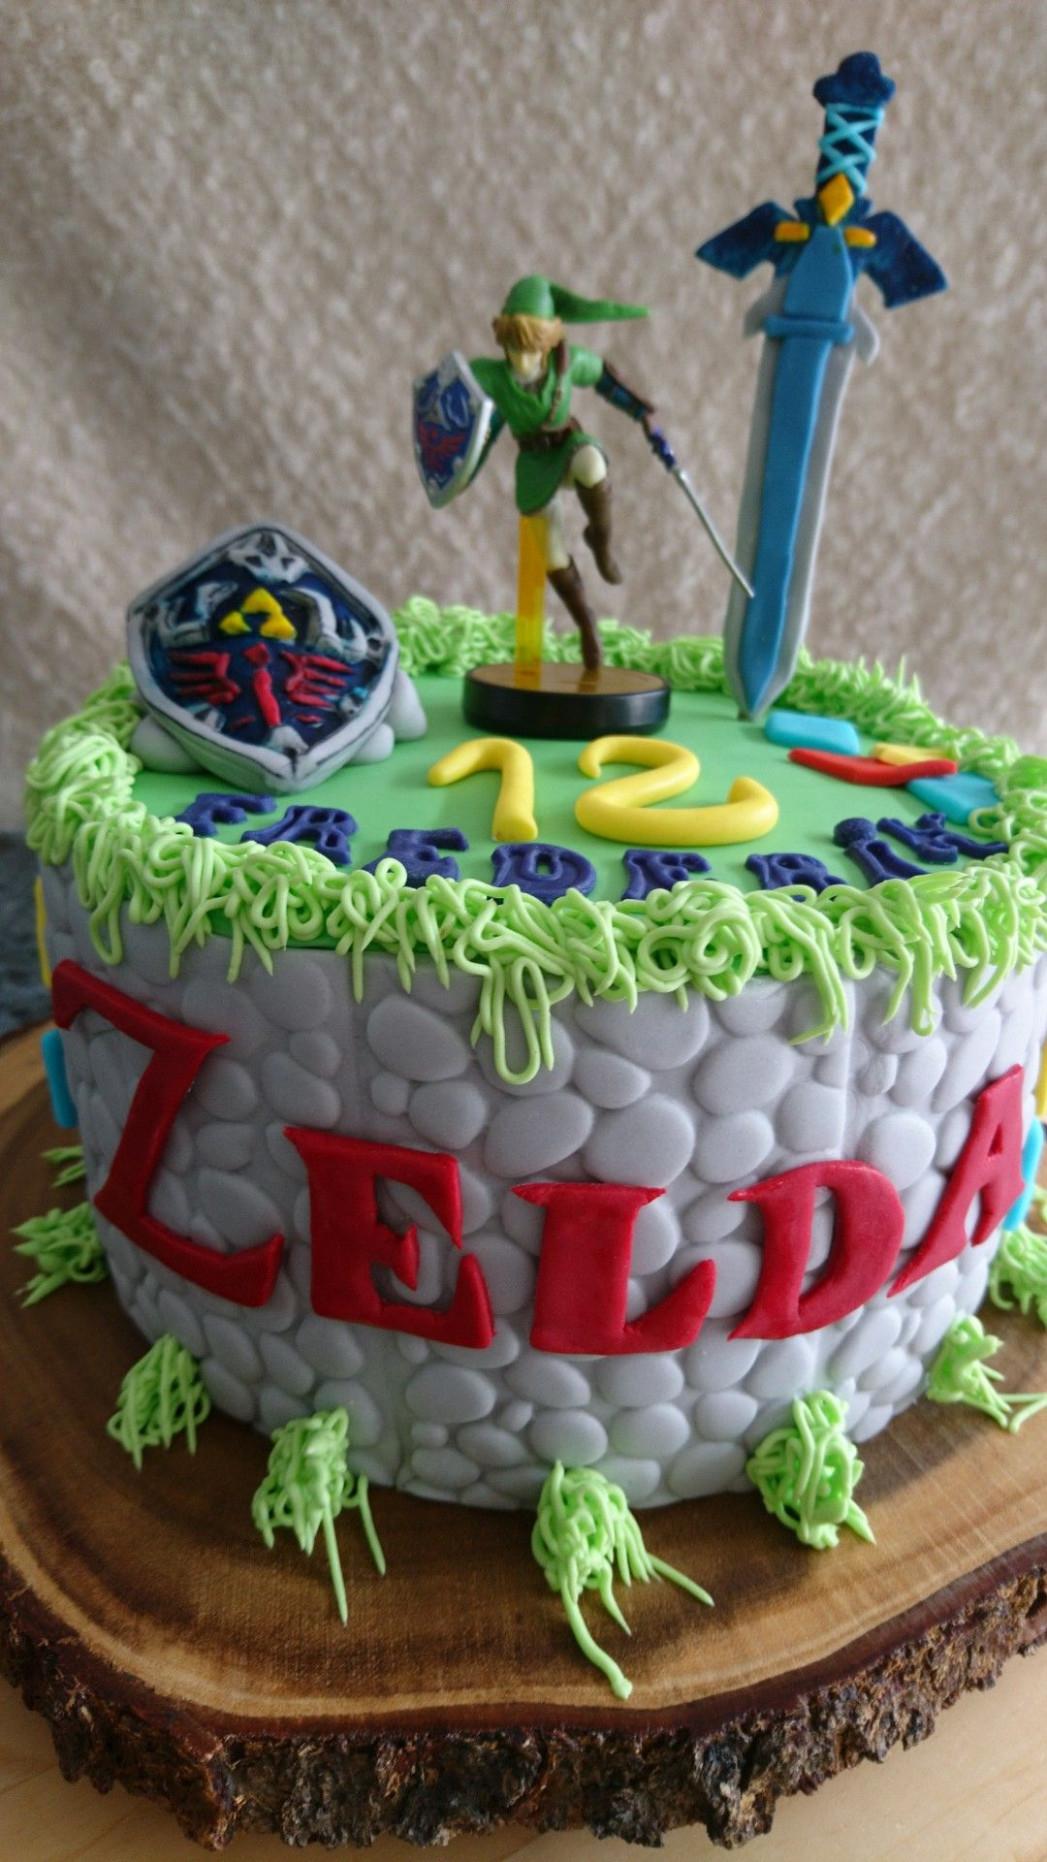 Legend of Zelda cake | Food & Drink in 2019 | Zelda ...